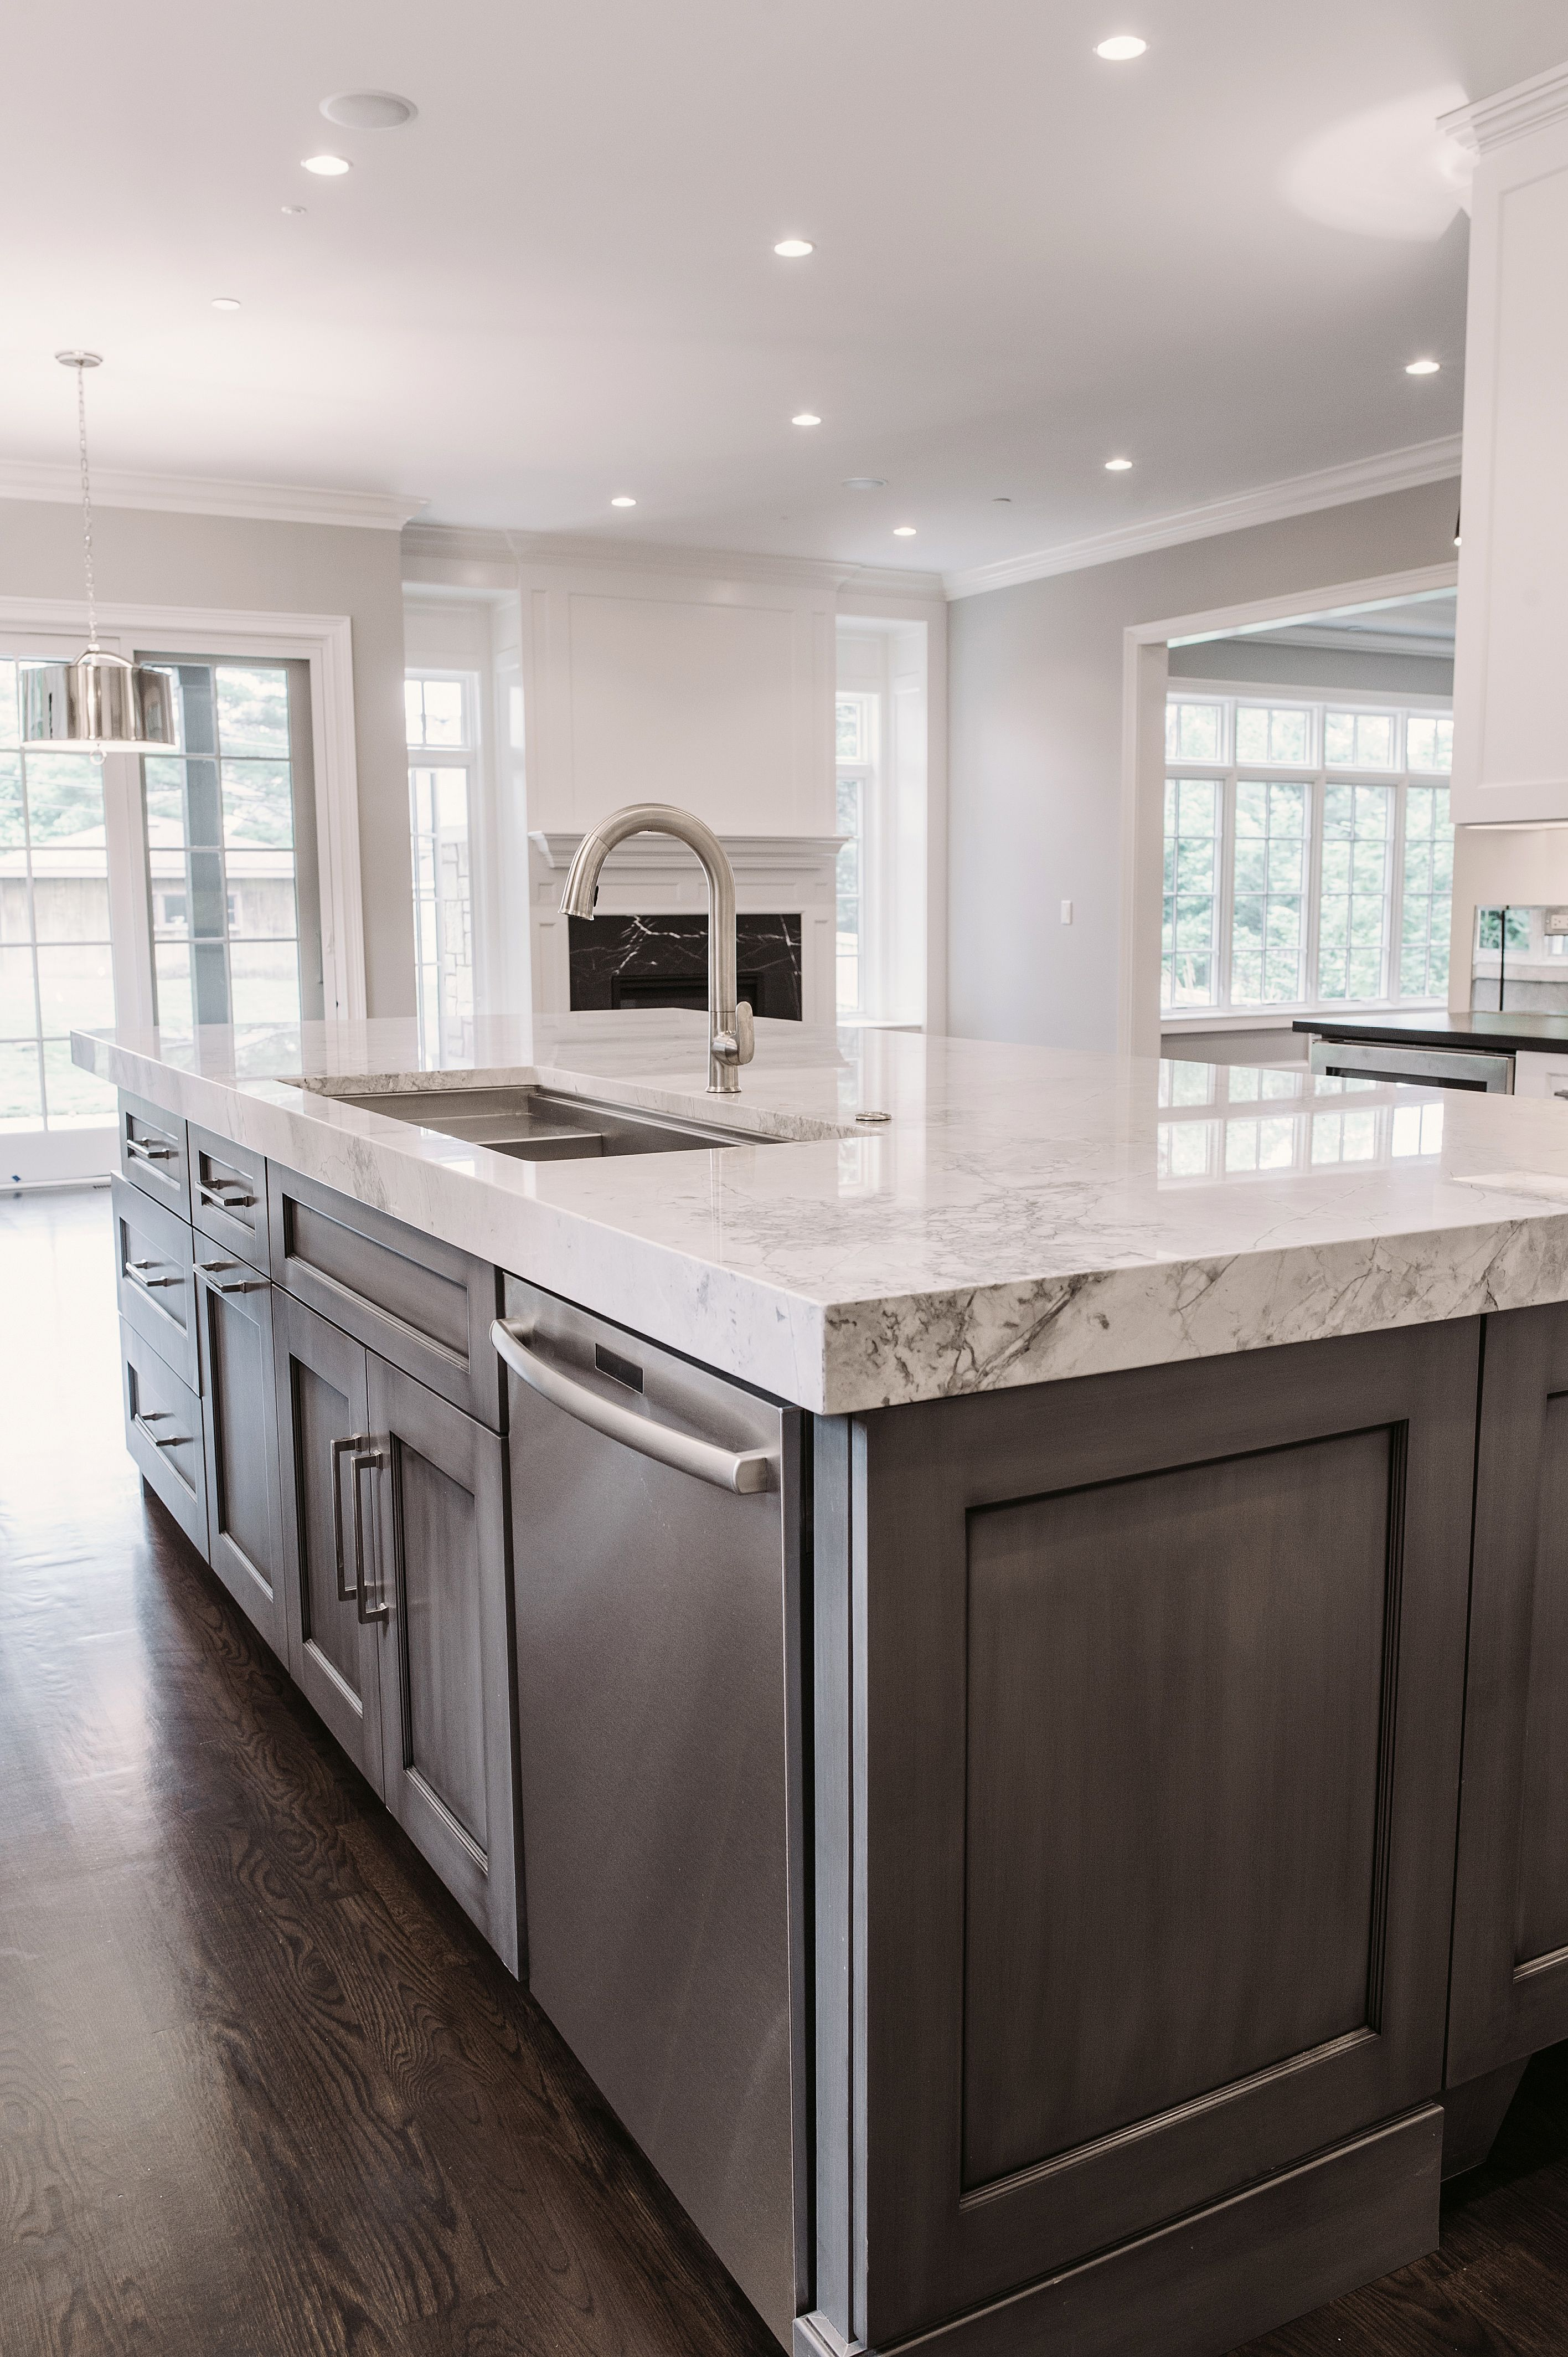 Pin by erika mae on house in pinterest kitchen home and